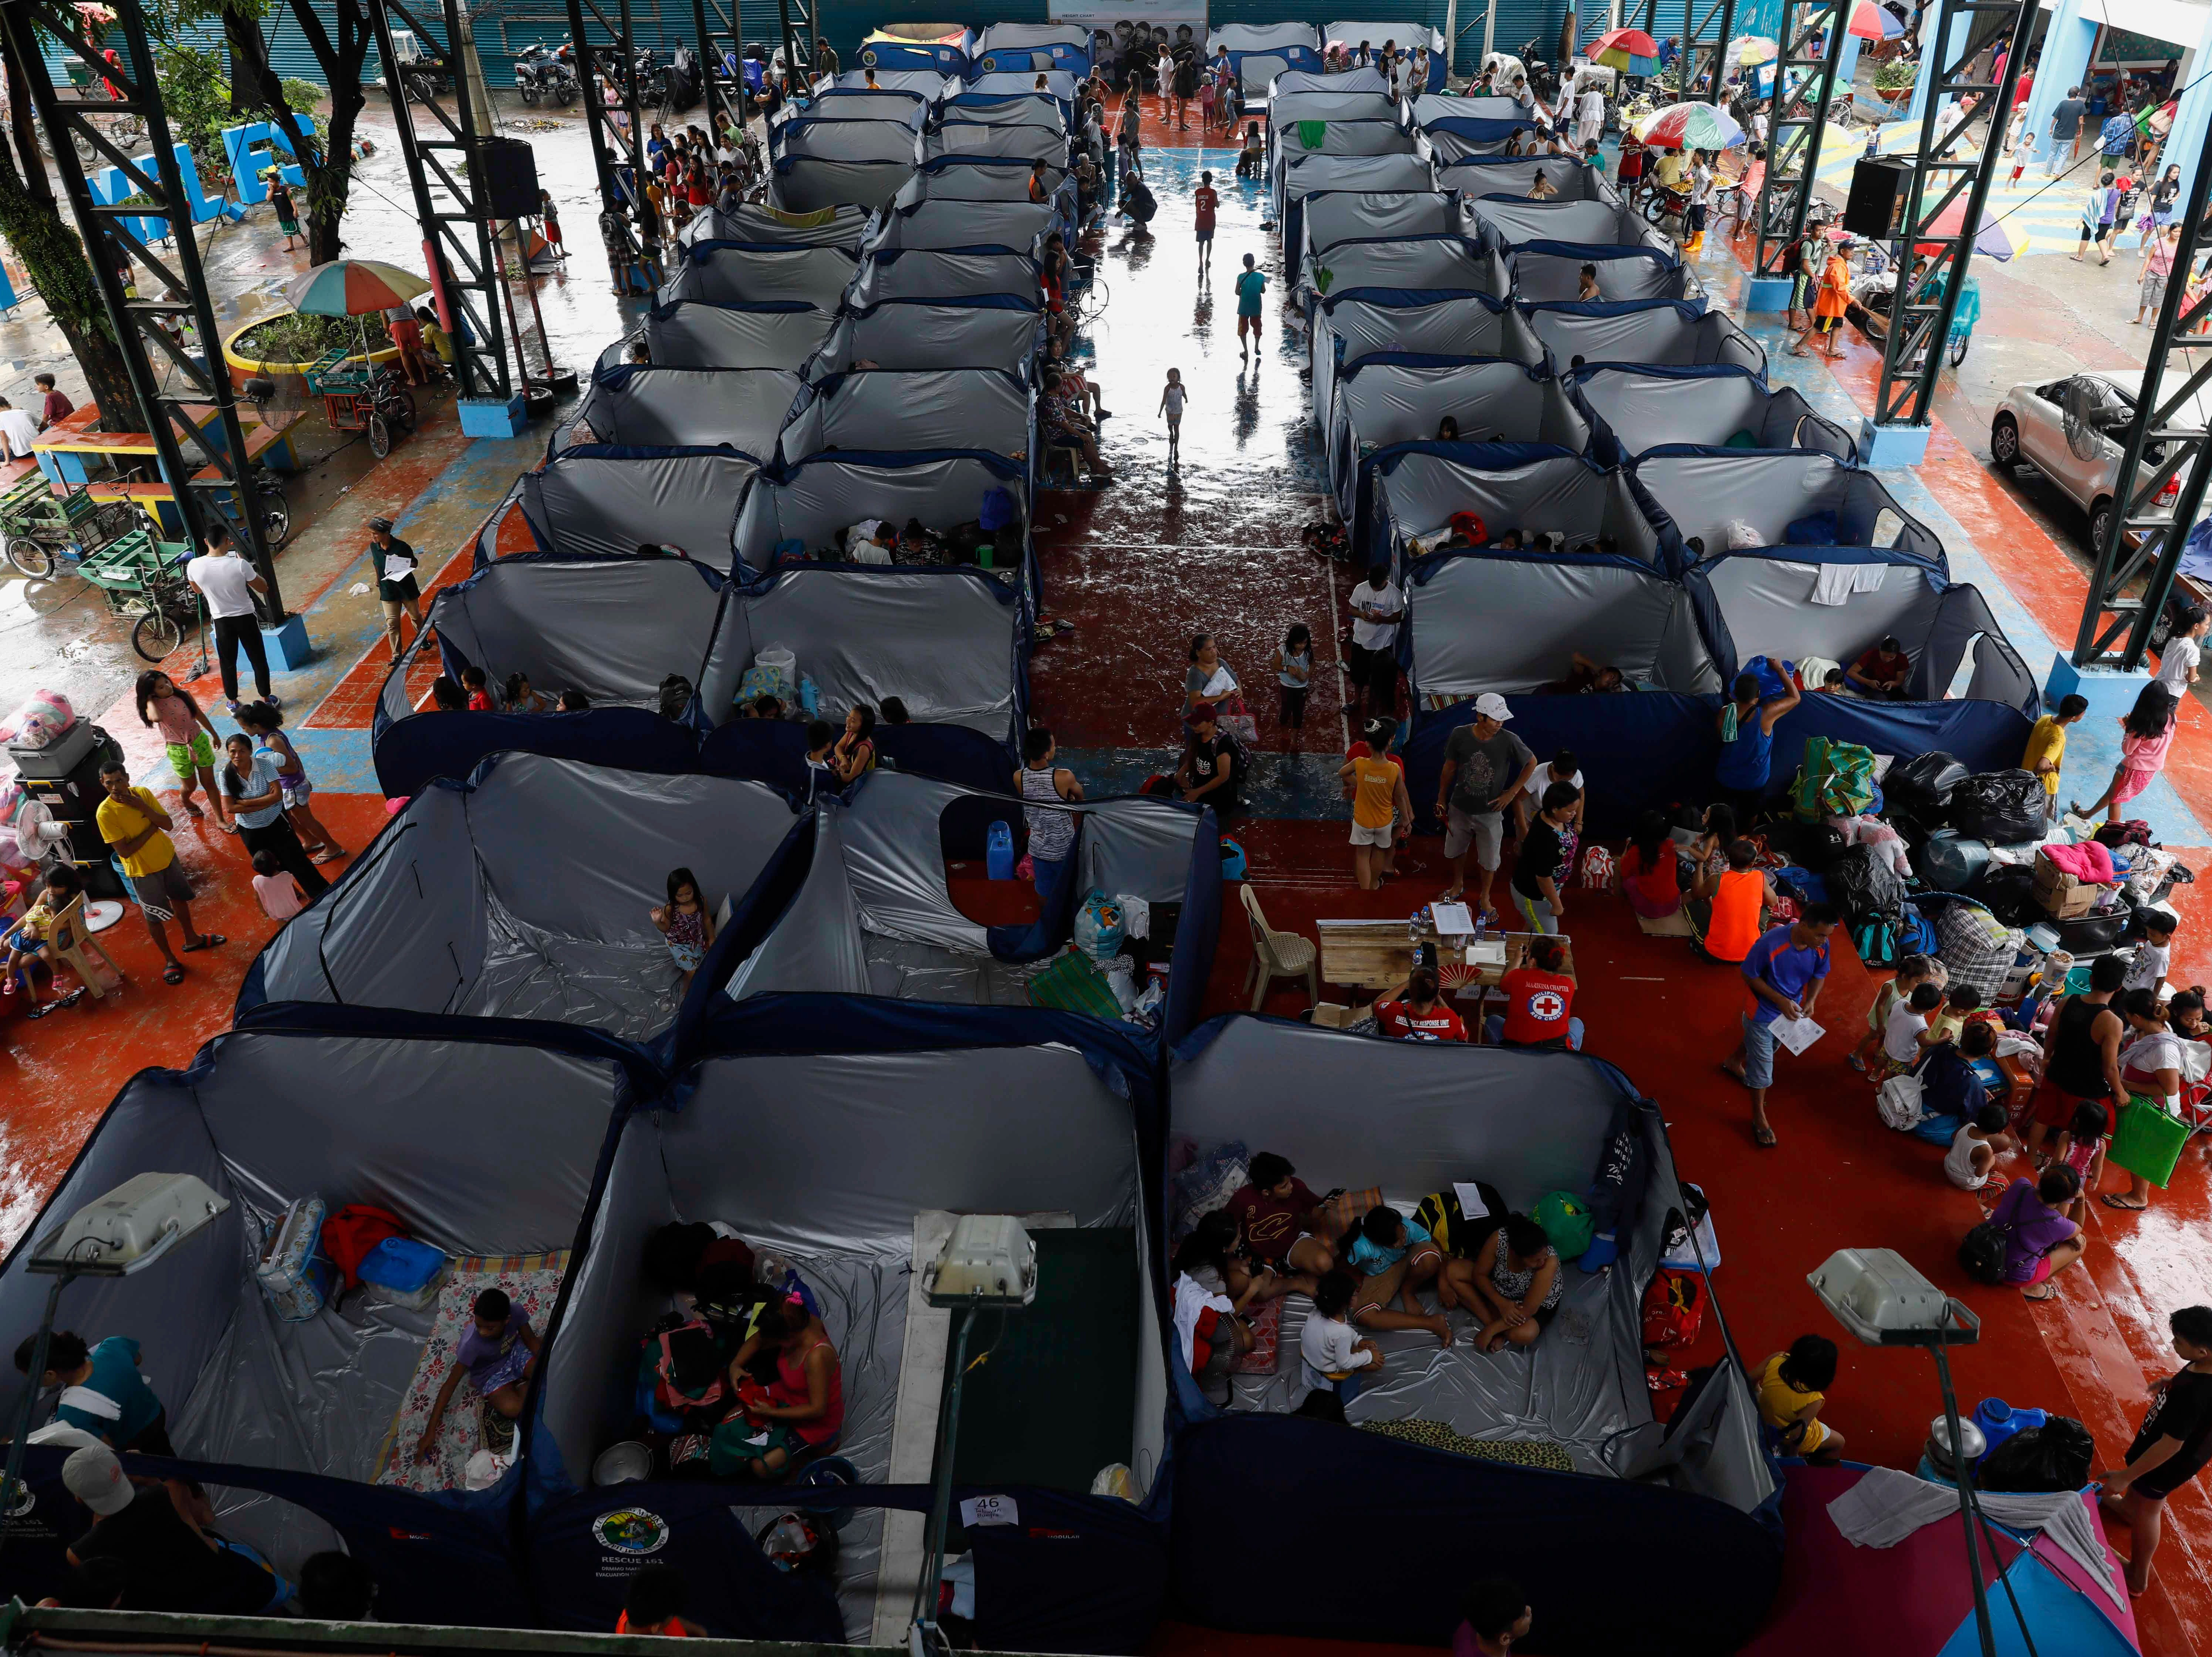 Residents who have been preventively evacuated due to typhoon use modular tents at an evacuation center in Marikina City, east of Manila, Philippines on Sept. 15, 2018.